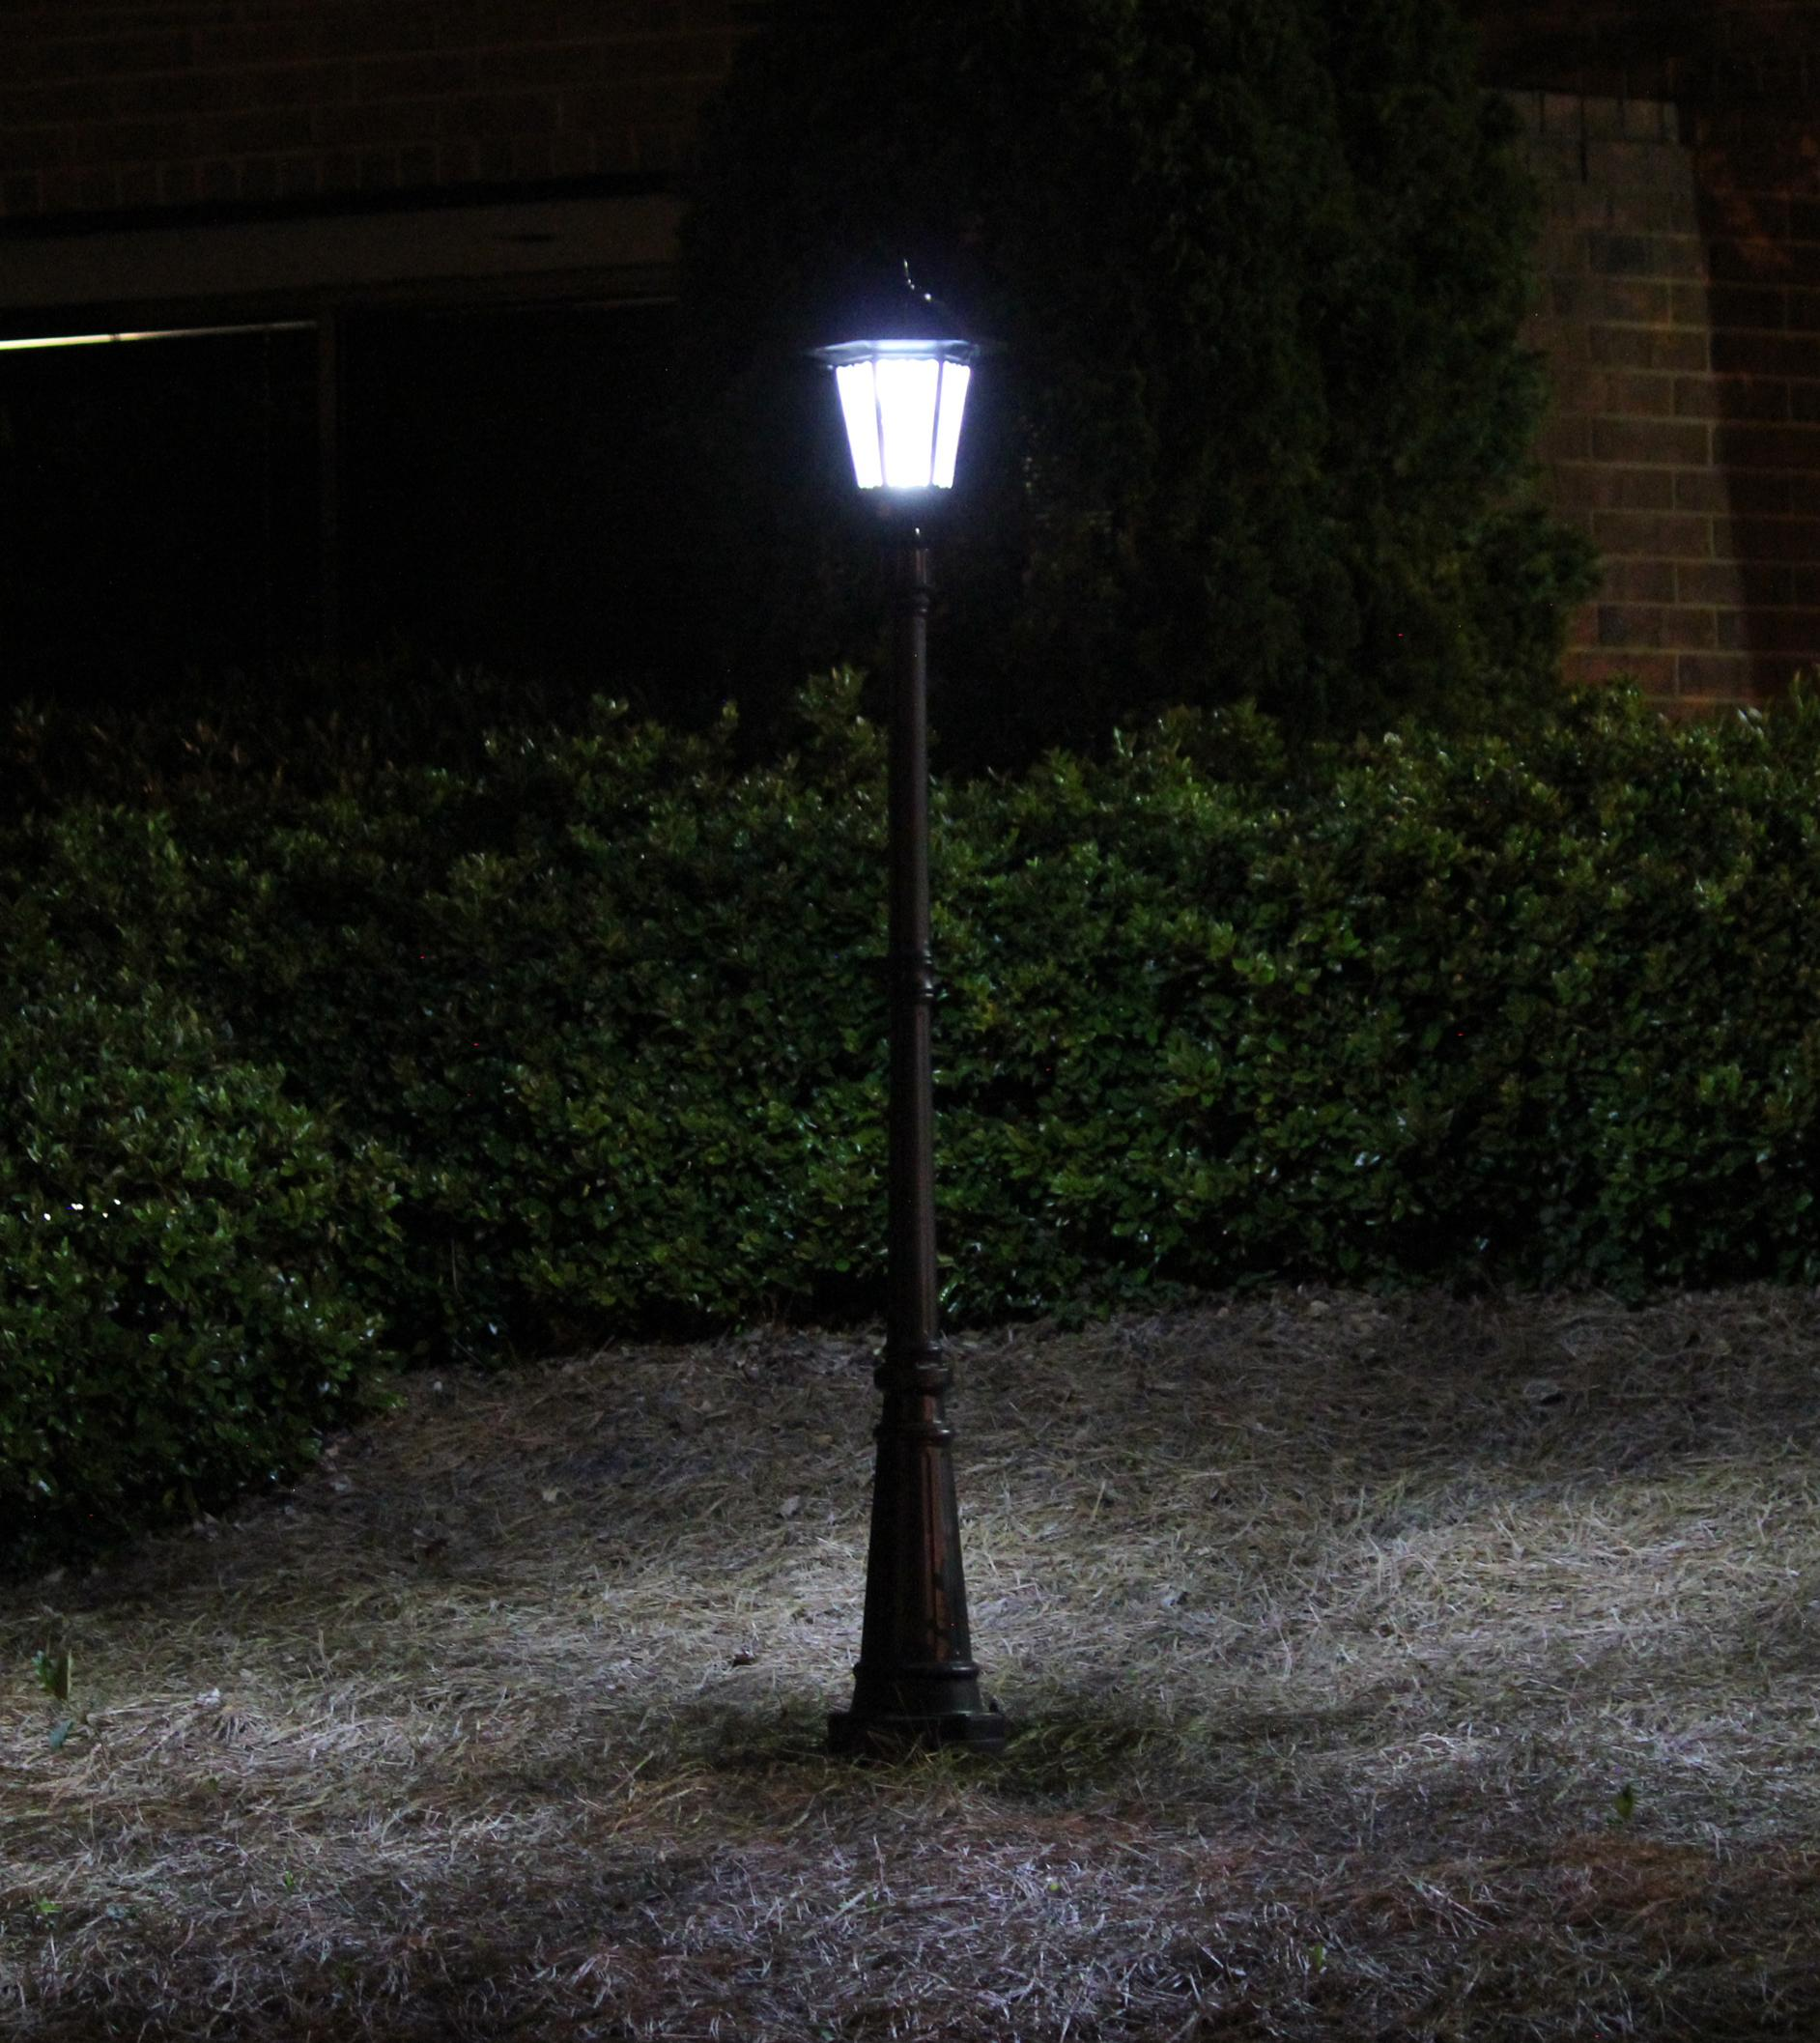 Gama sonic windsor solar outdoor led light for Garden lights